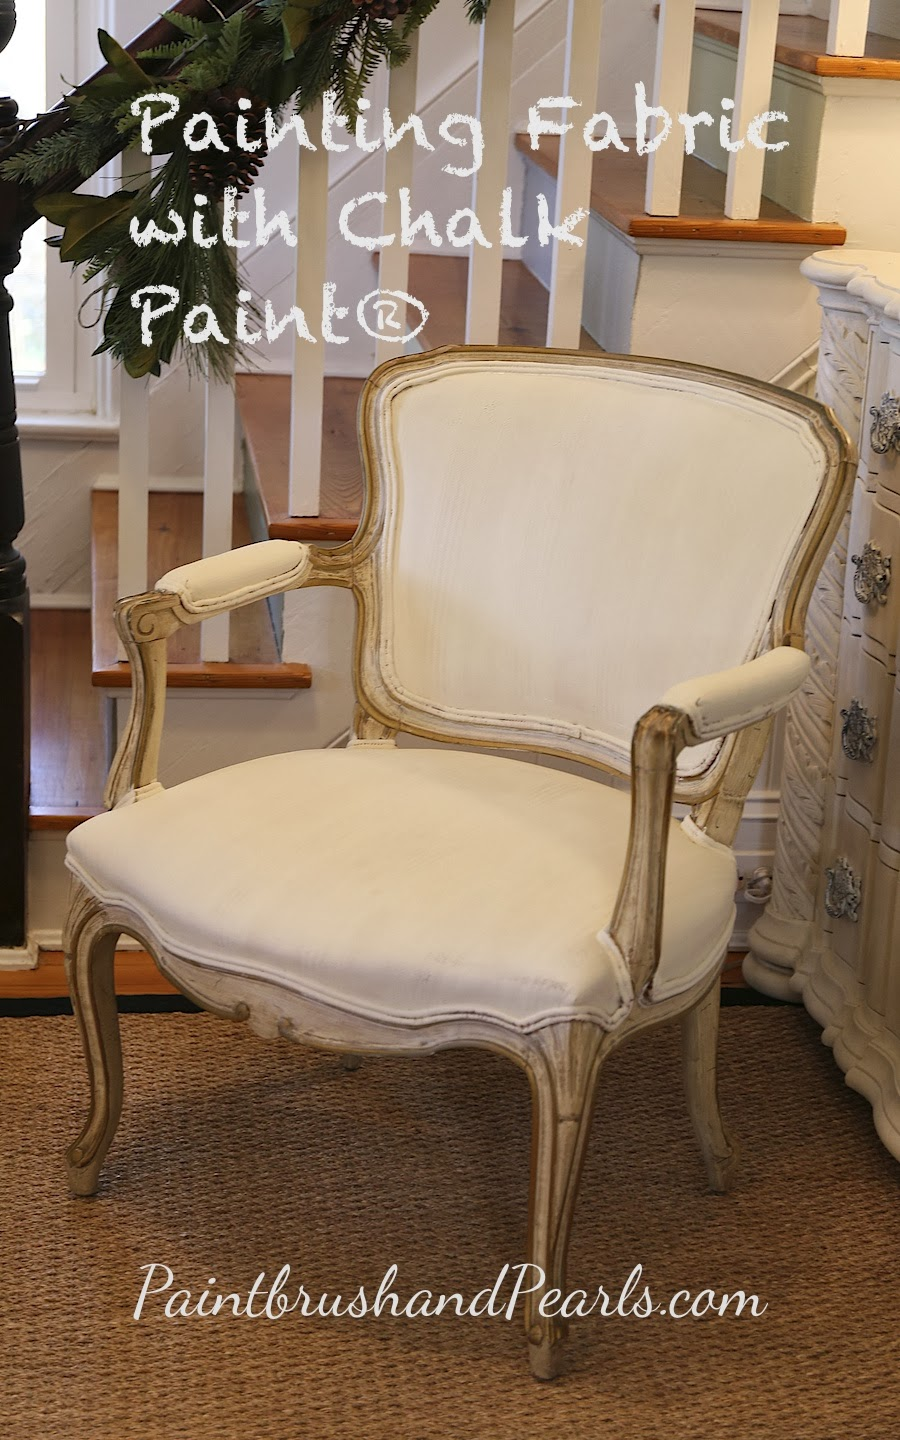 Brocante Home Collection's Paintbrush And Pearls: Painting